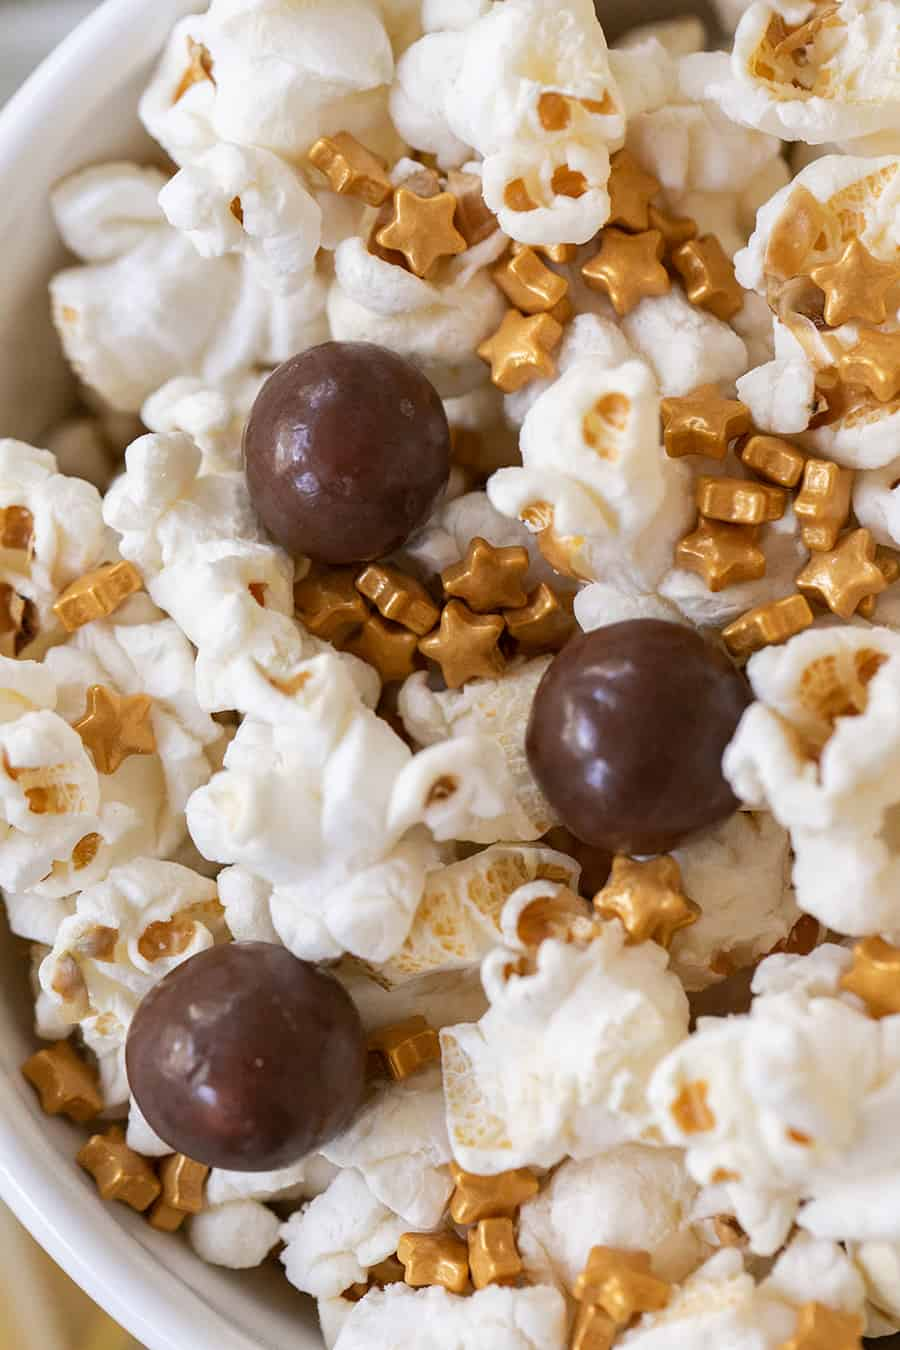 Popcorn with chocolate malt balls and gold sprinkles.